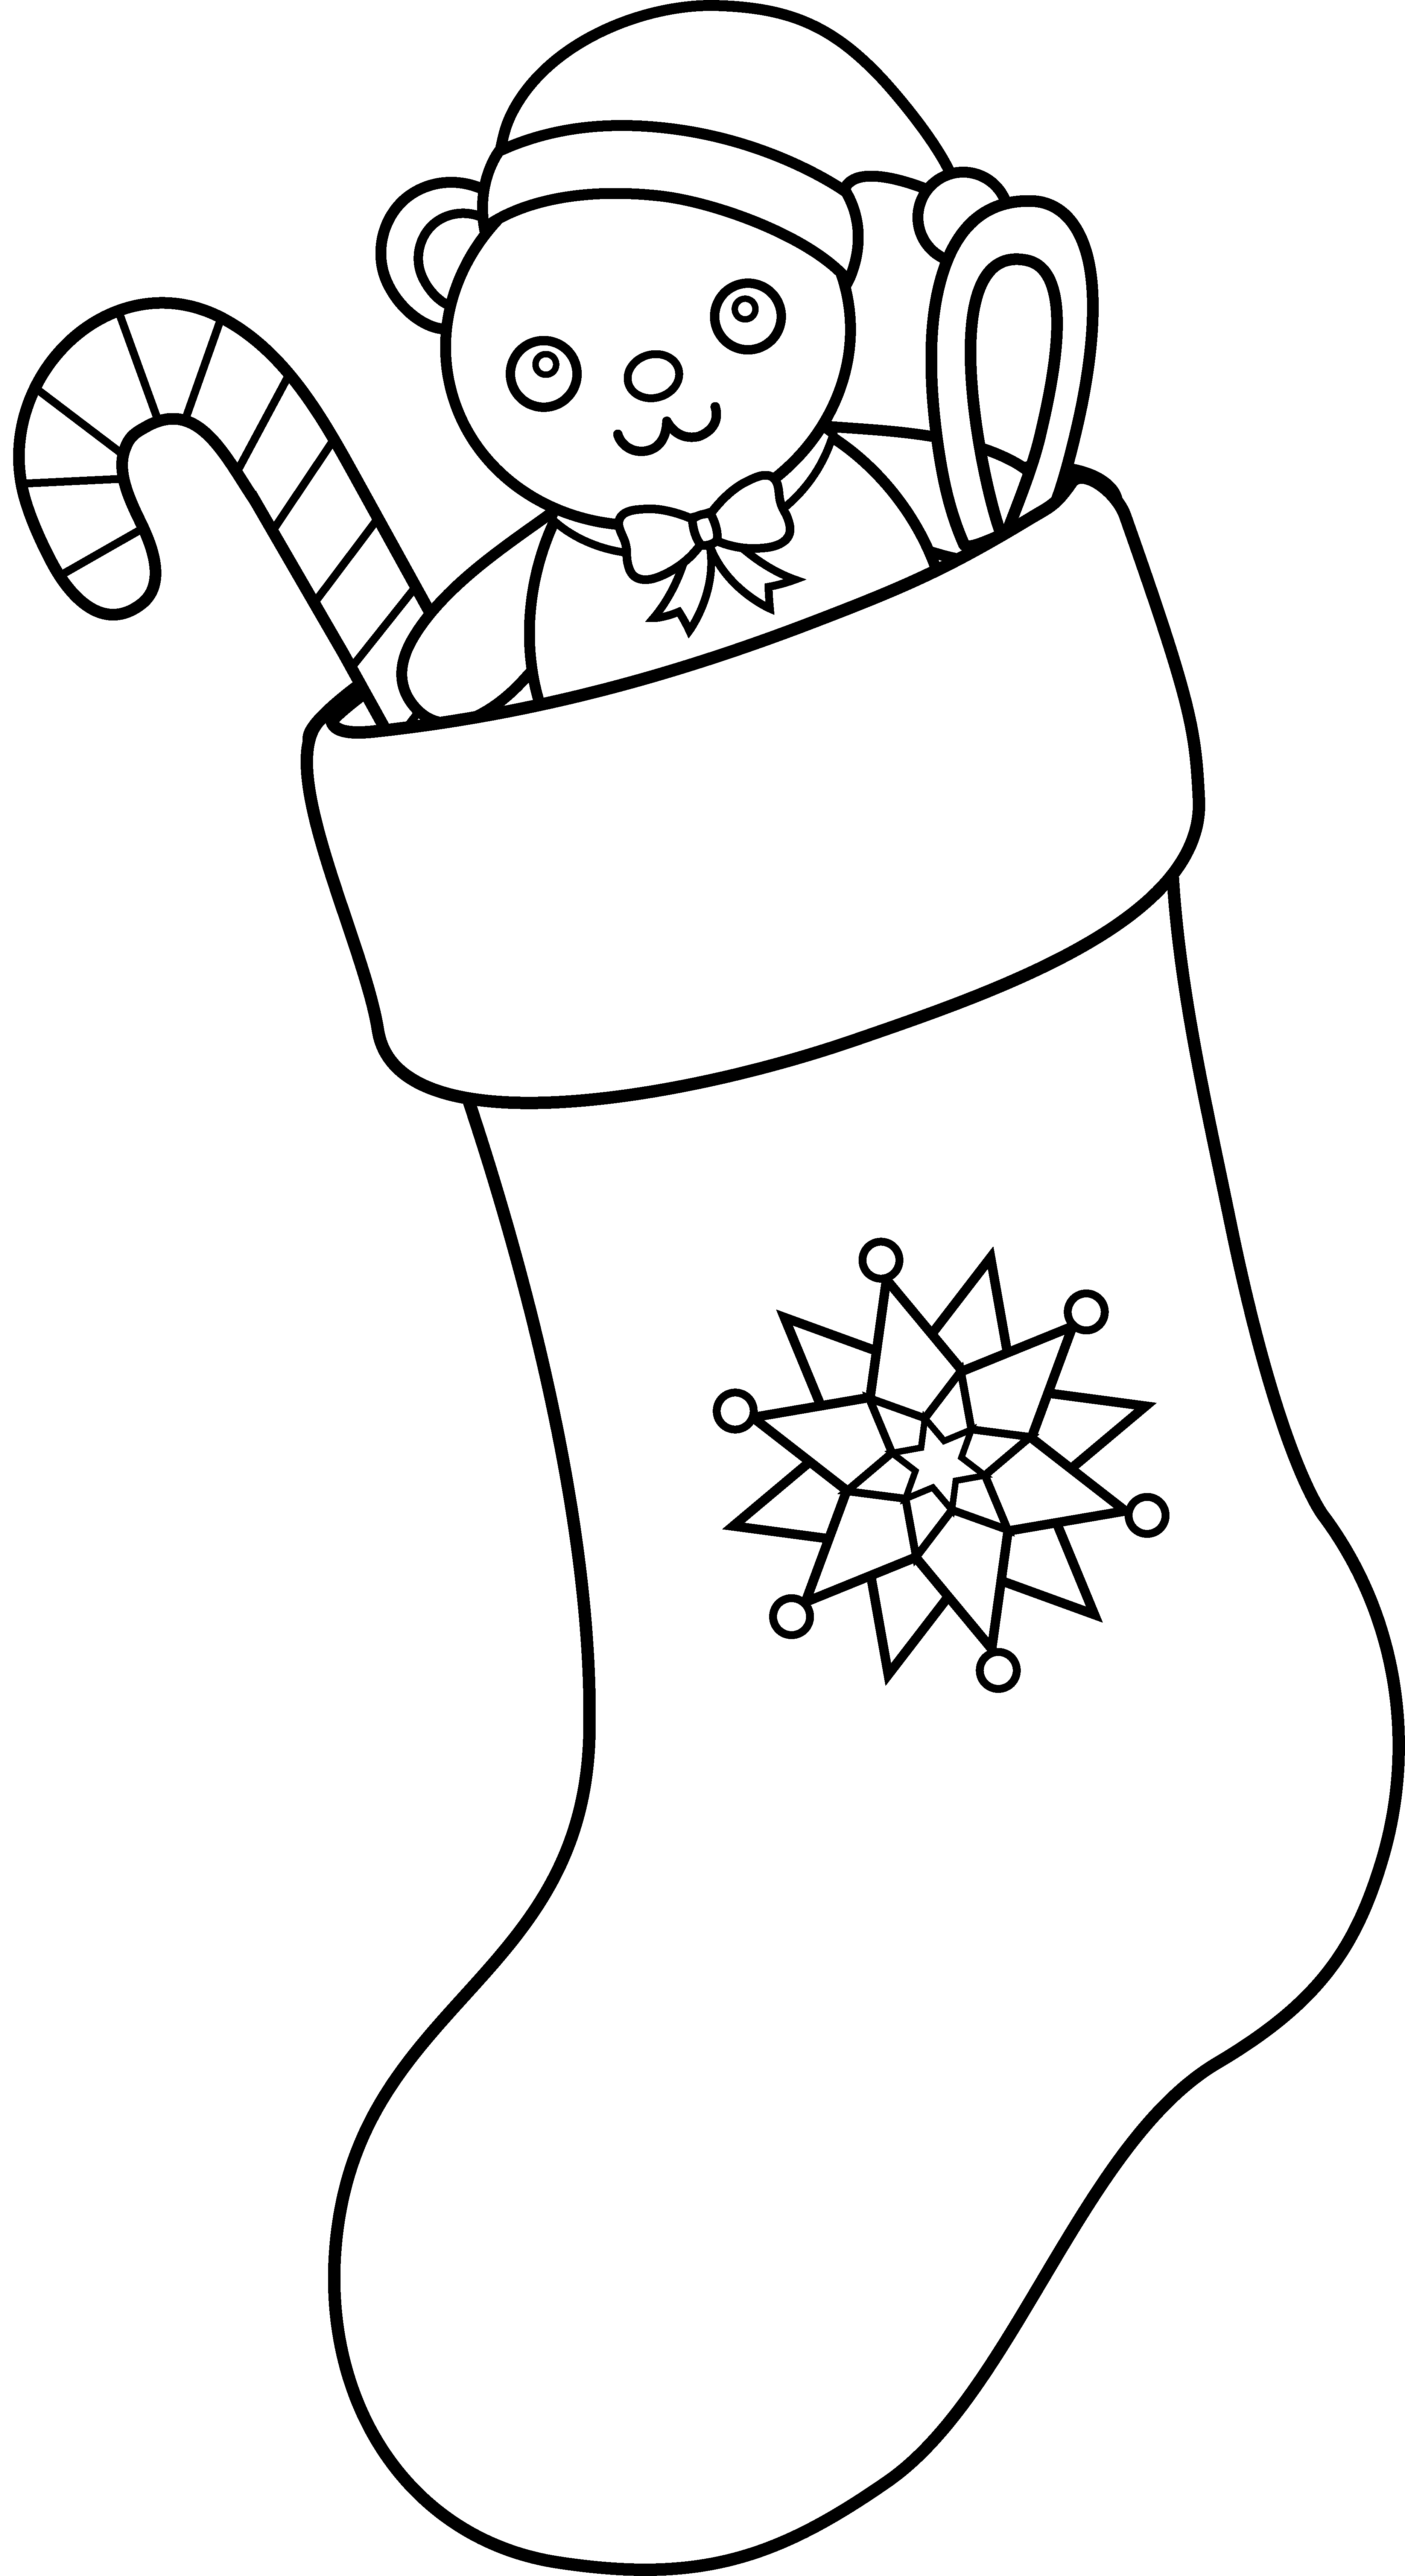 vector free stock Line art free clip. Christmas stocking clipart black and white